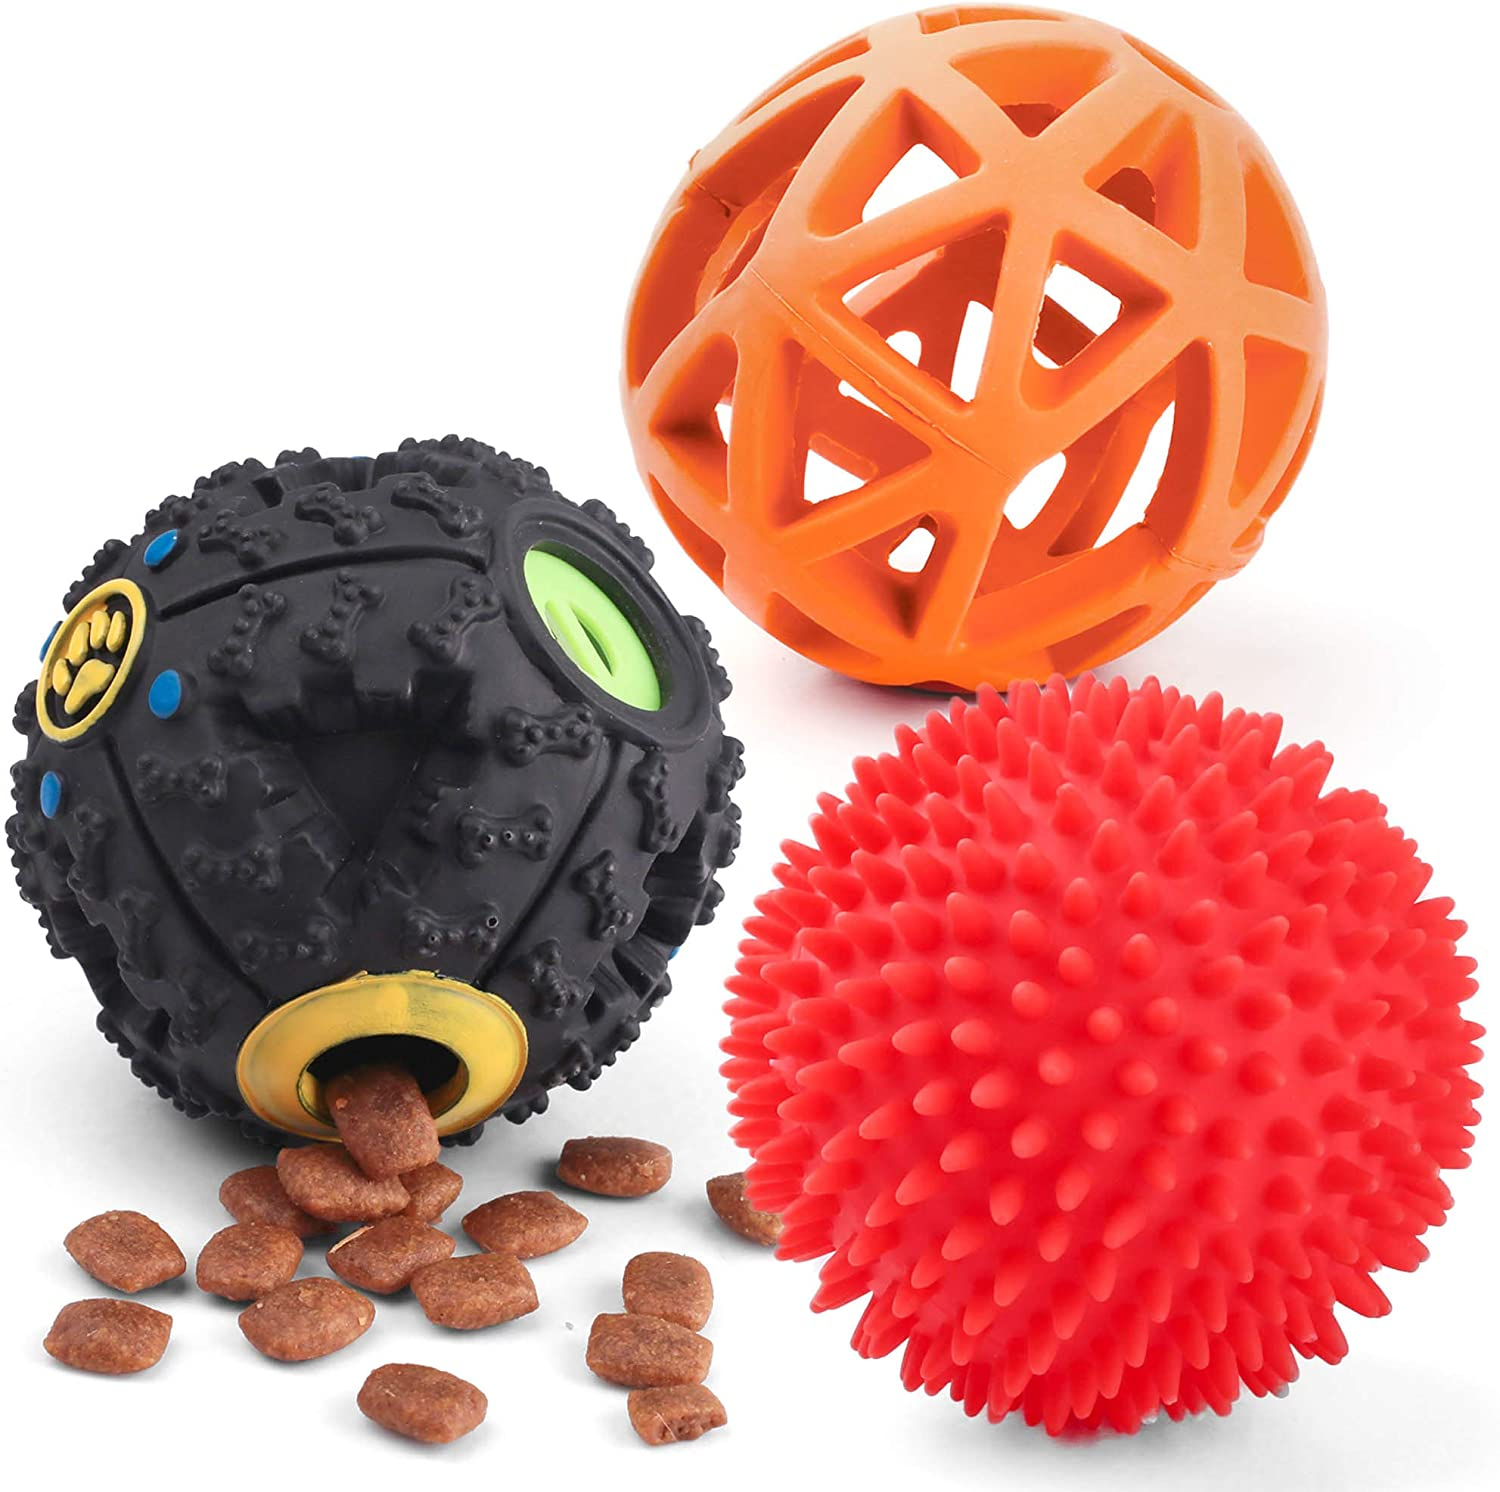 3Pack Dog Treat Ball, Interactive Food Dispensing Dog Toy, Dog Puzzle Toys for Boredom, Dog Squeaky Balls, Non-Toxic Interactive Dog Toys, Dog Teething Toys for Puppy Small Dog Training and Playing